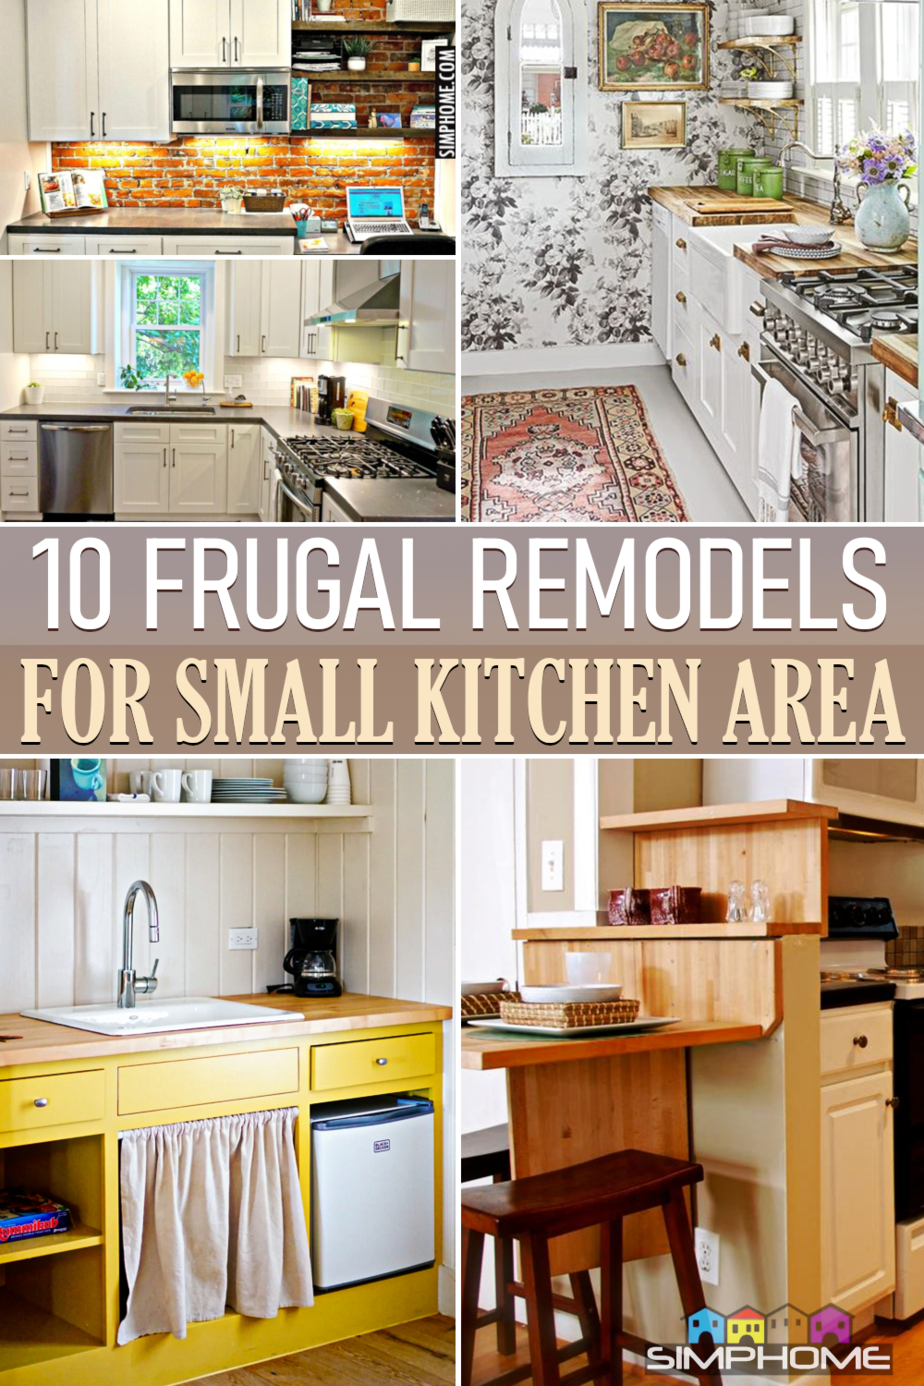 10 Frugal Kitchen Remodels That Can Save BIG via Simphome.comFeatured